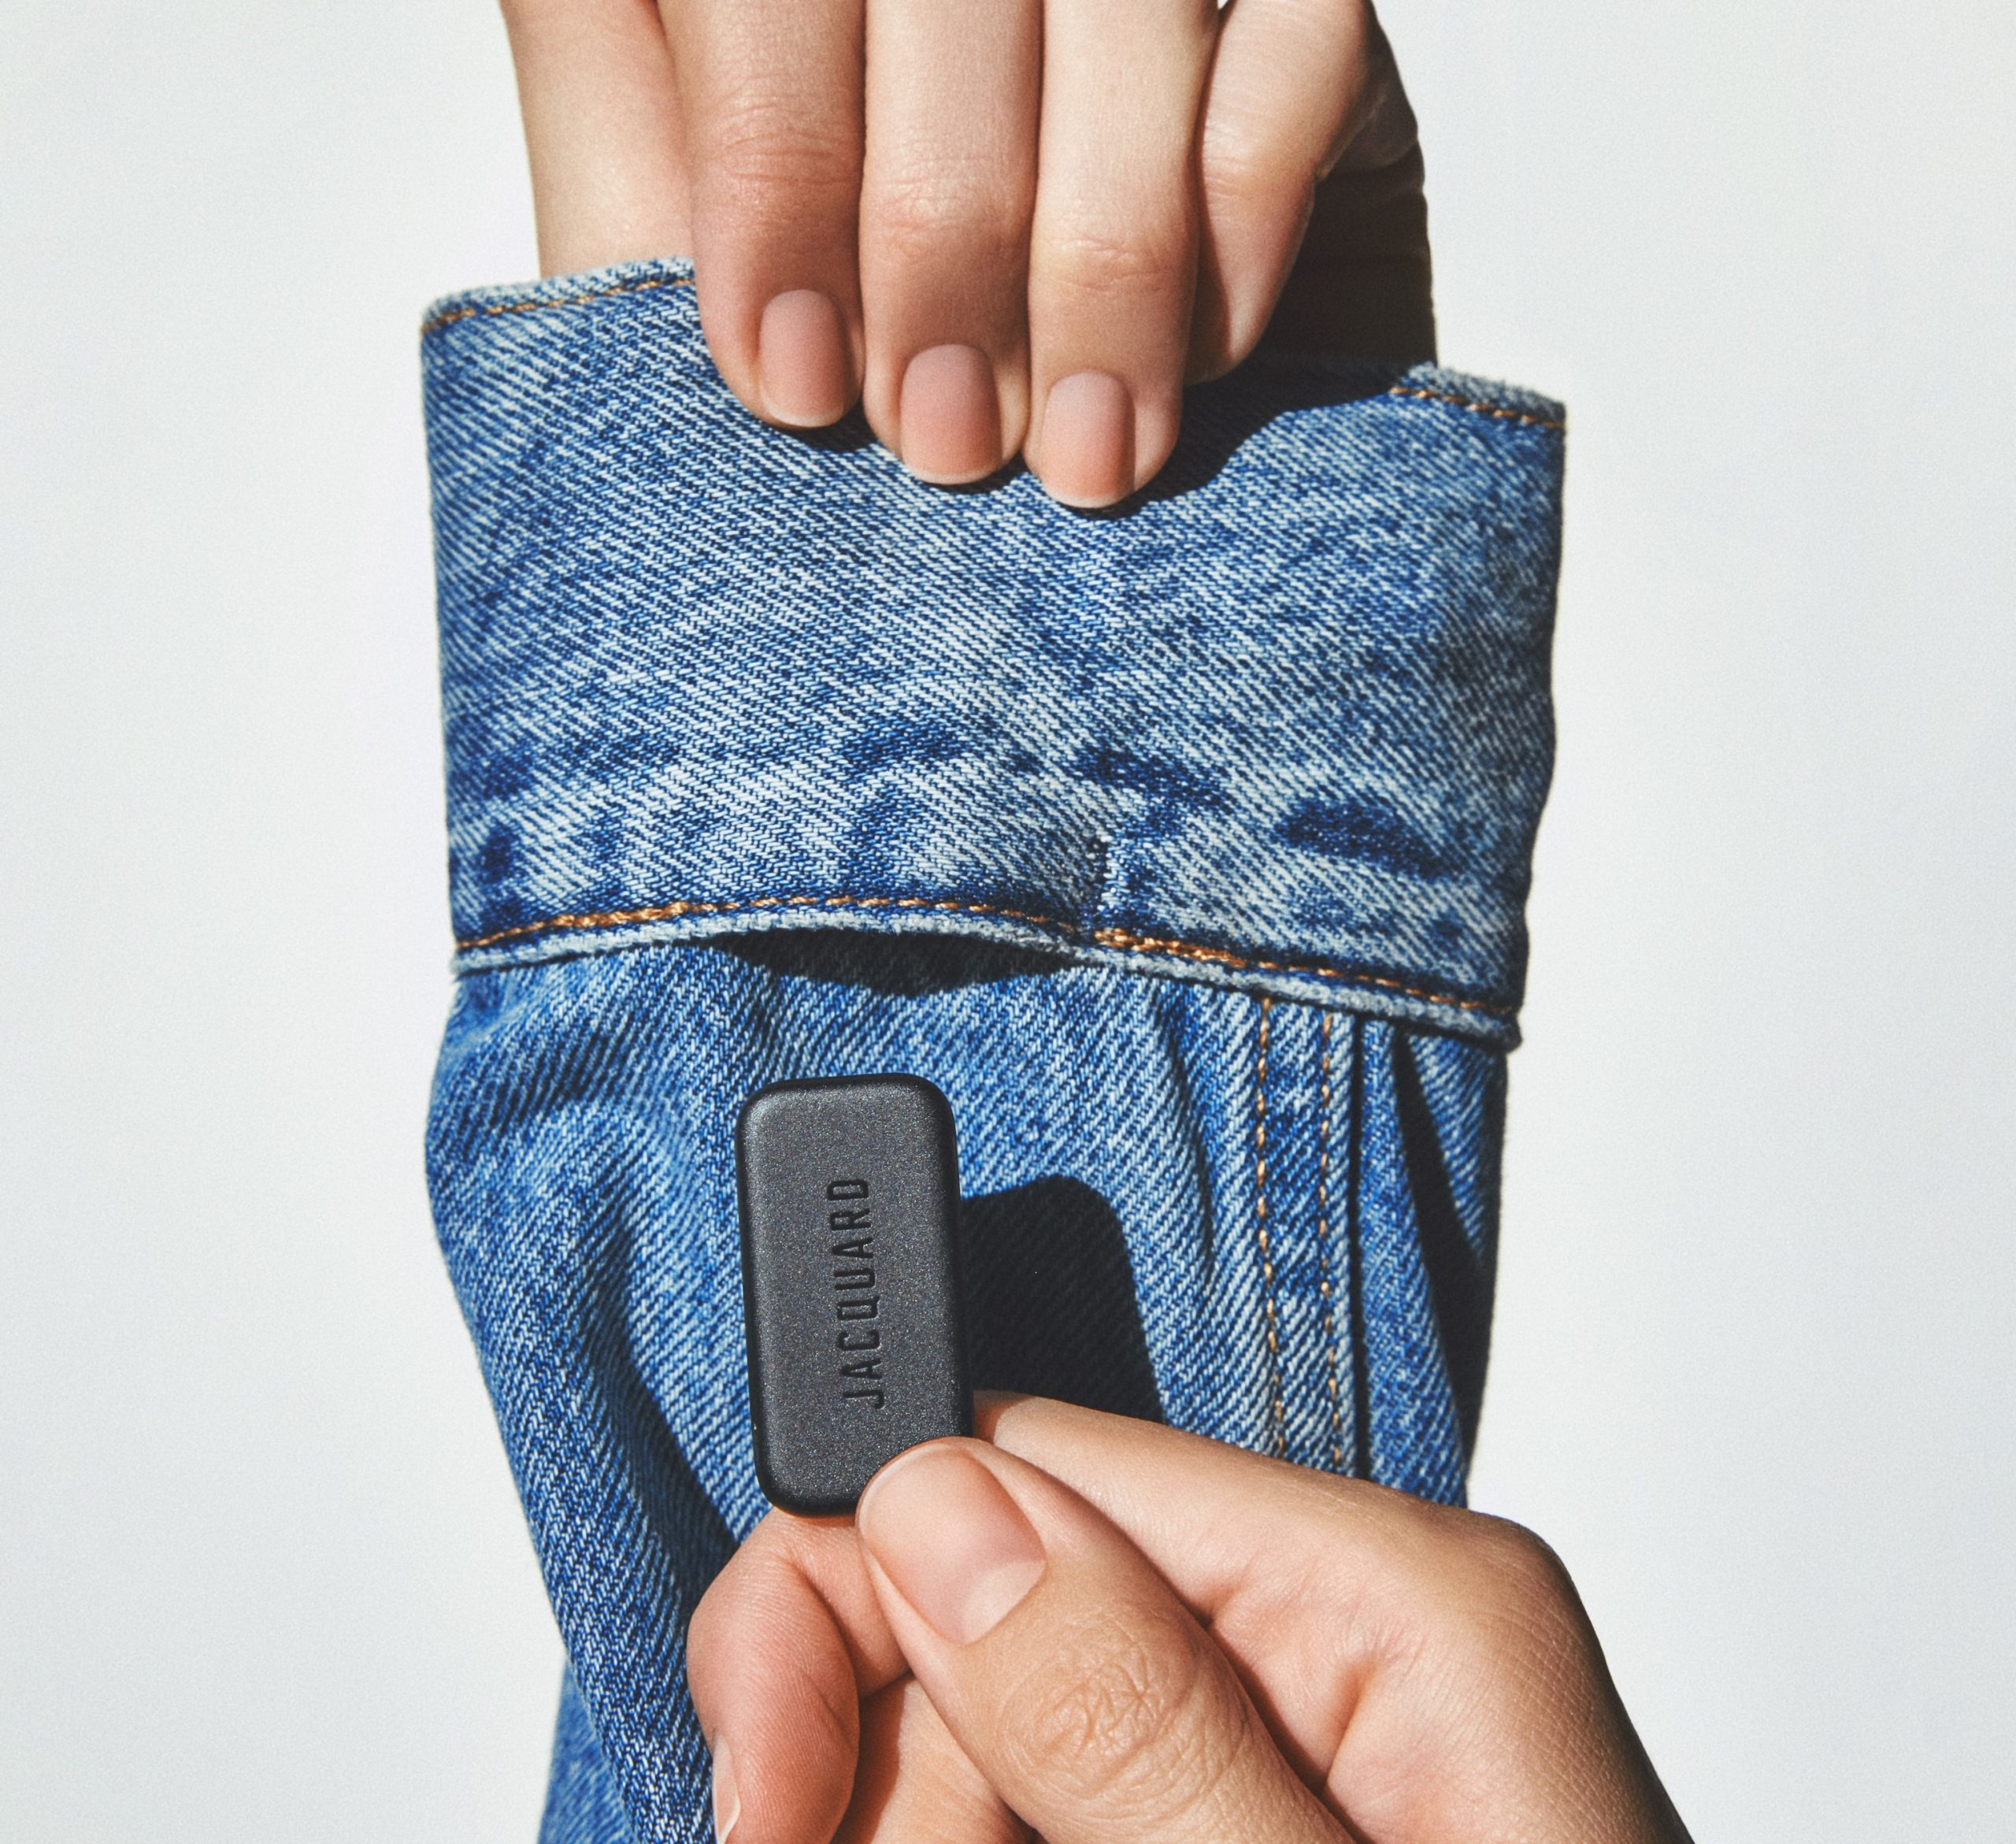 Featured image shows the Google Jacquard device being held against a denim sleeve. Image via Stratasys.